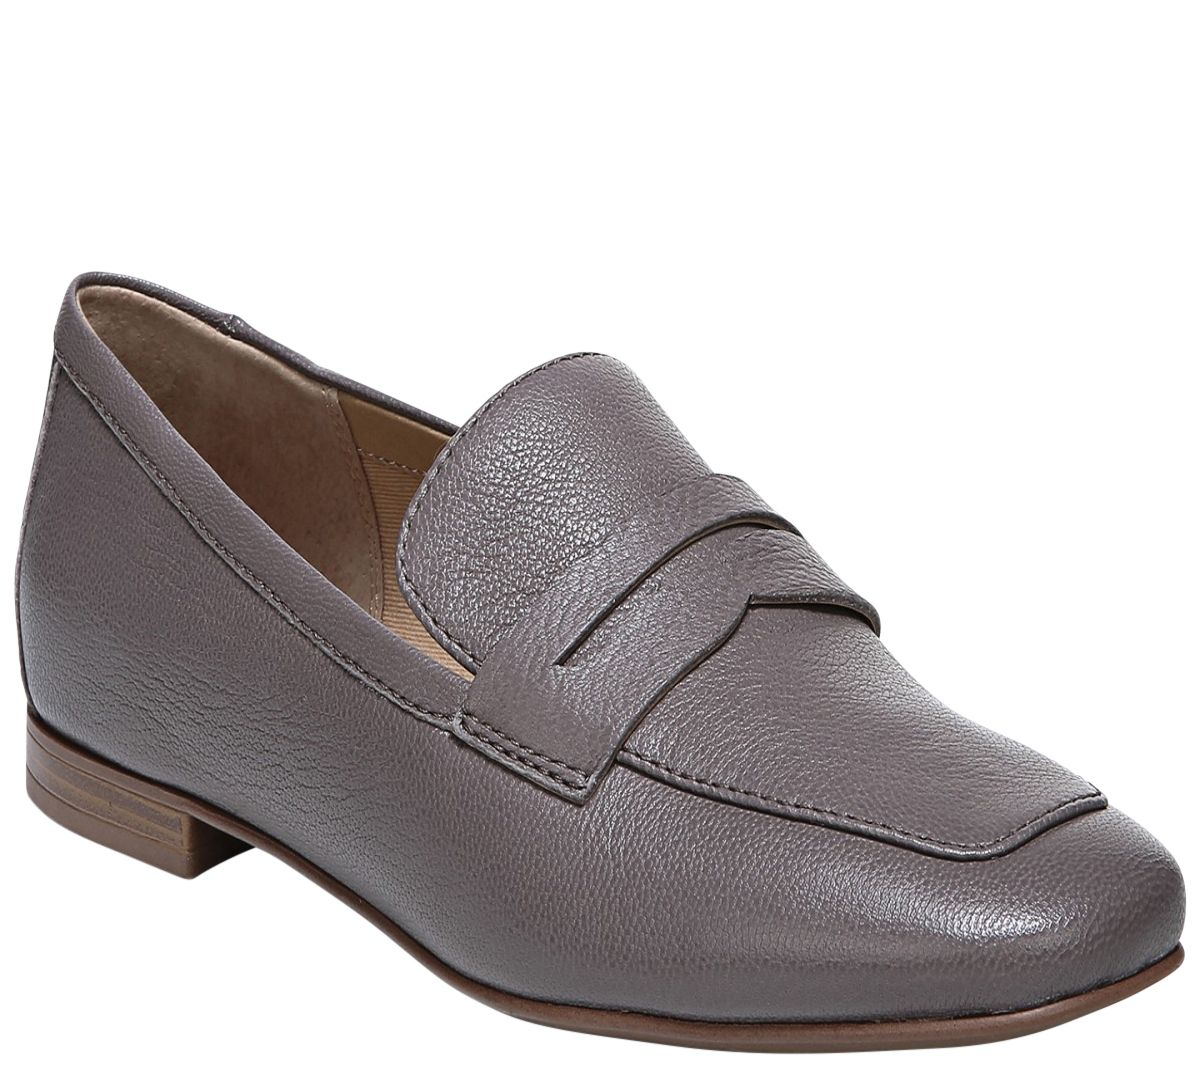 50d42b32dc9 Franco Sarto Penny Strap Loafers - Dame — QVC.com